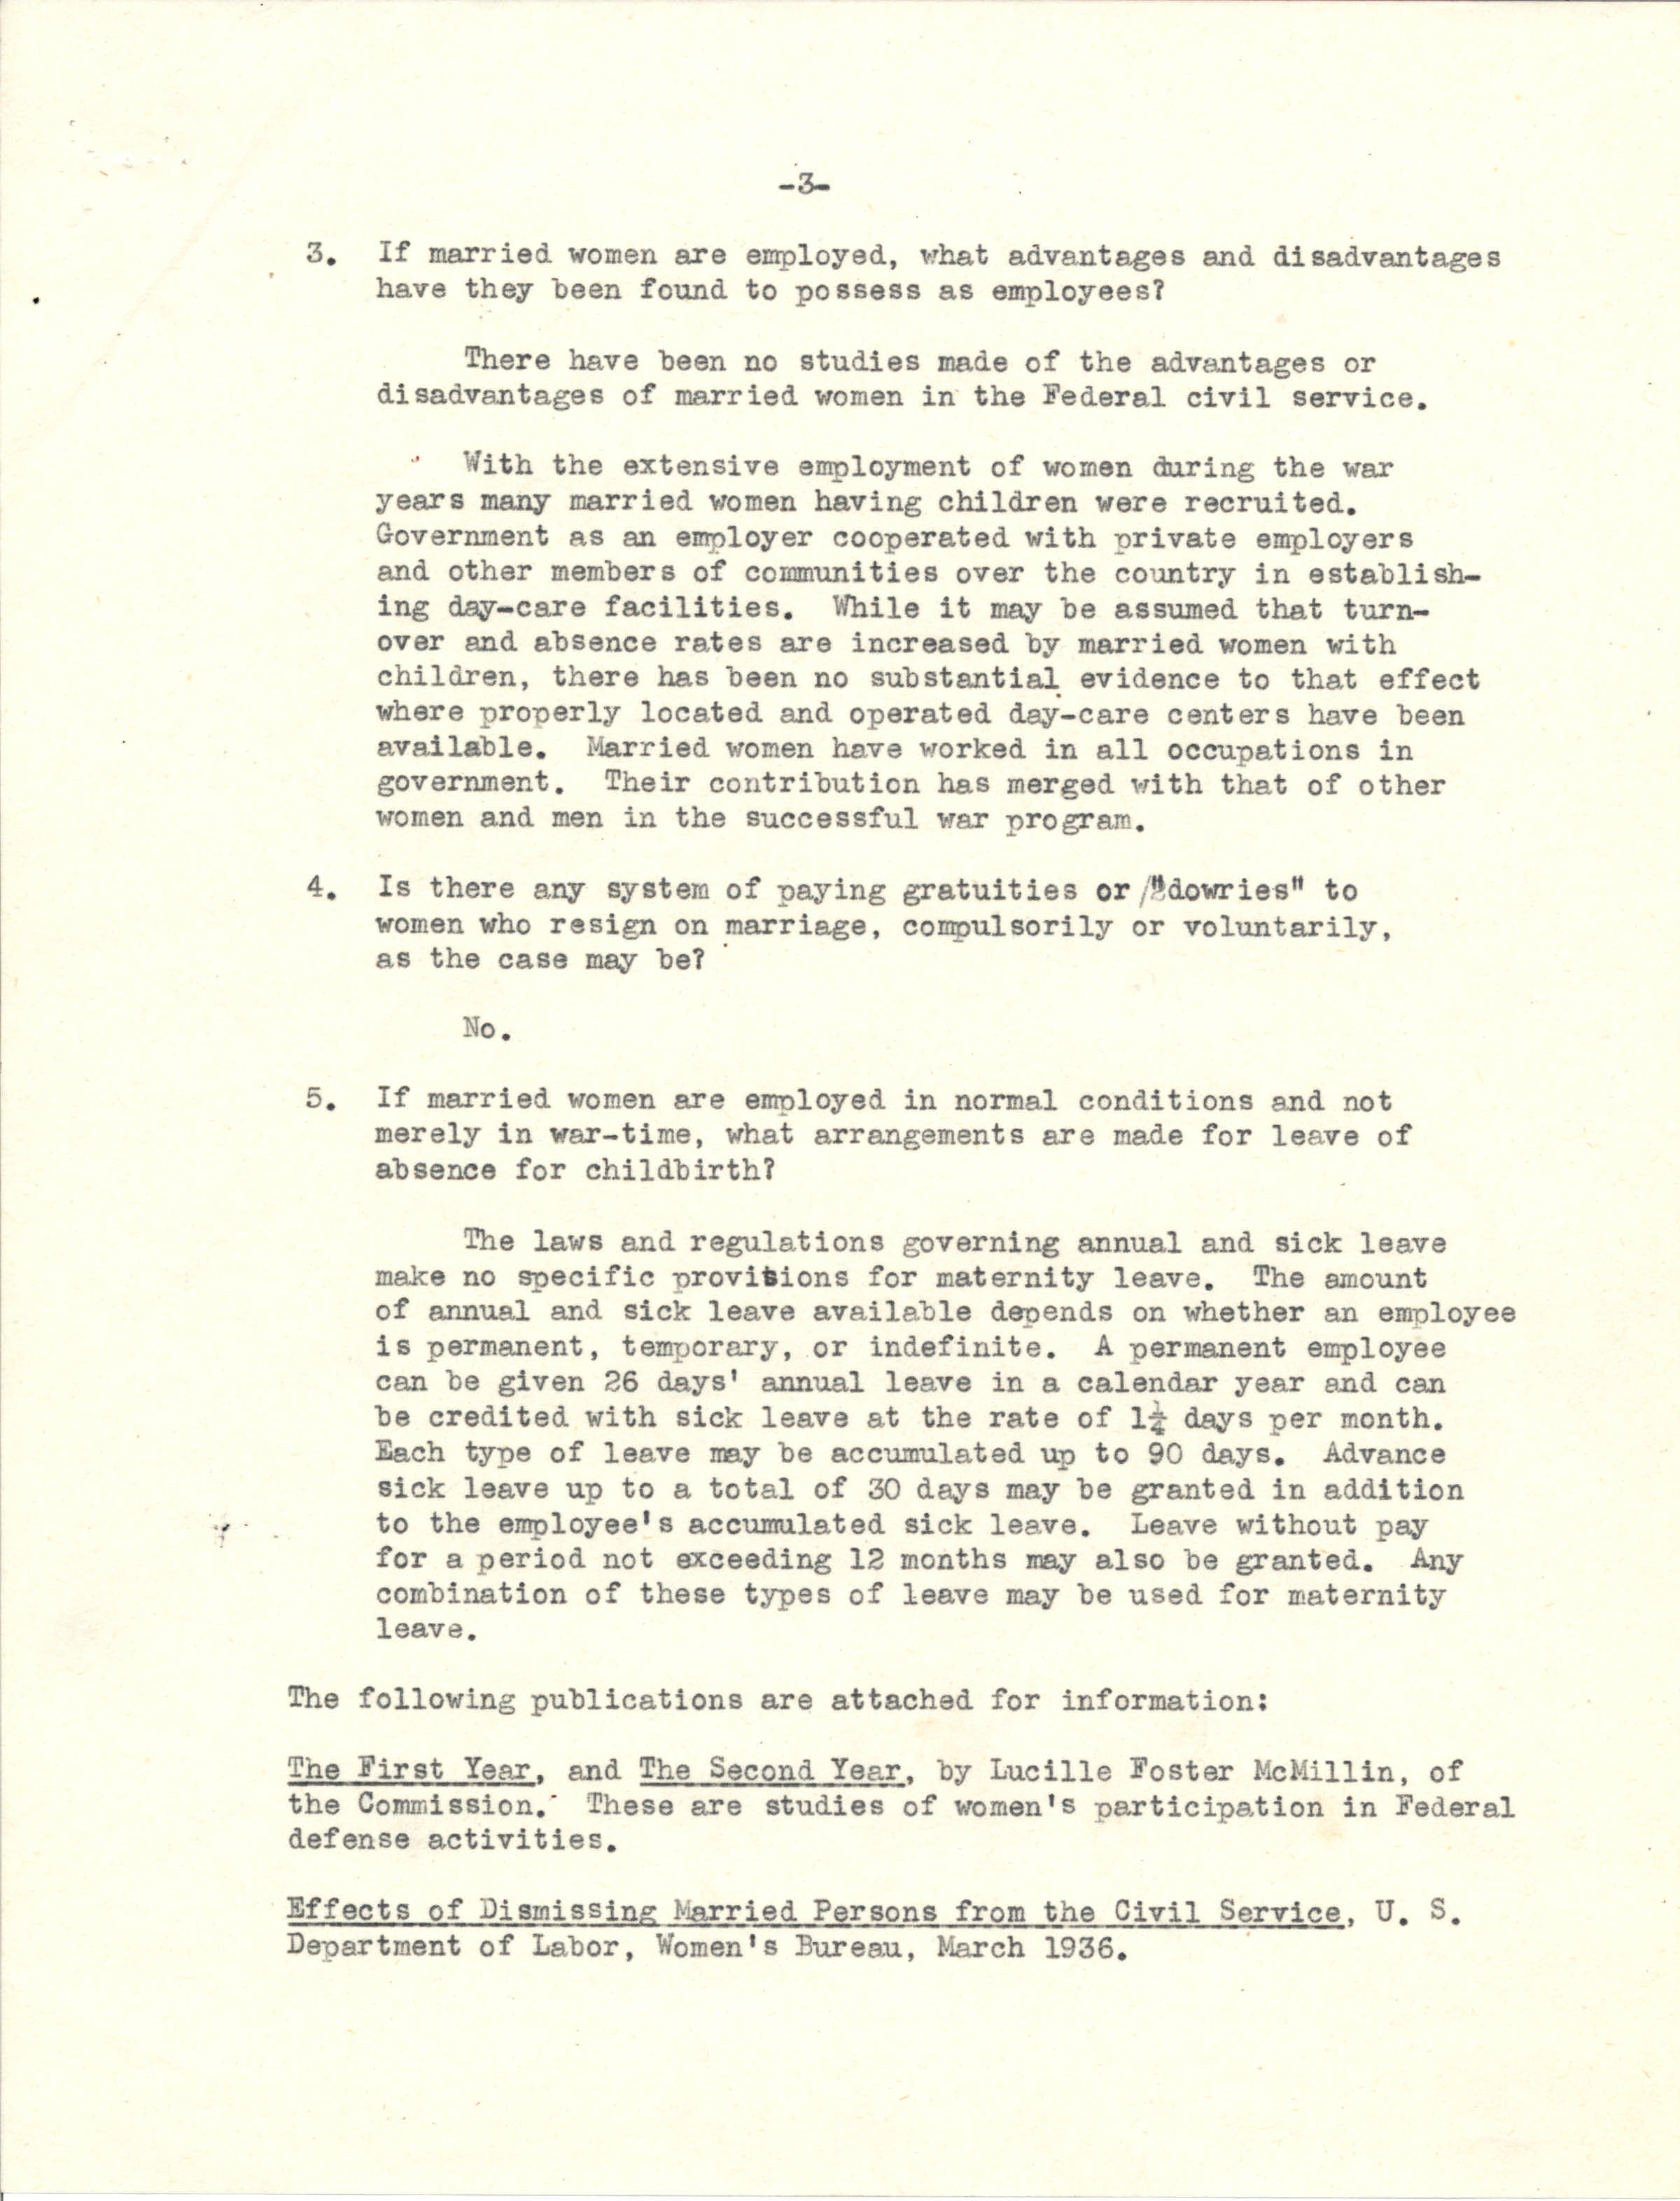 US Civil Service Commission response regarding the employment of married women